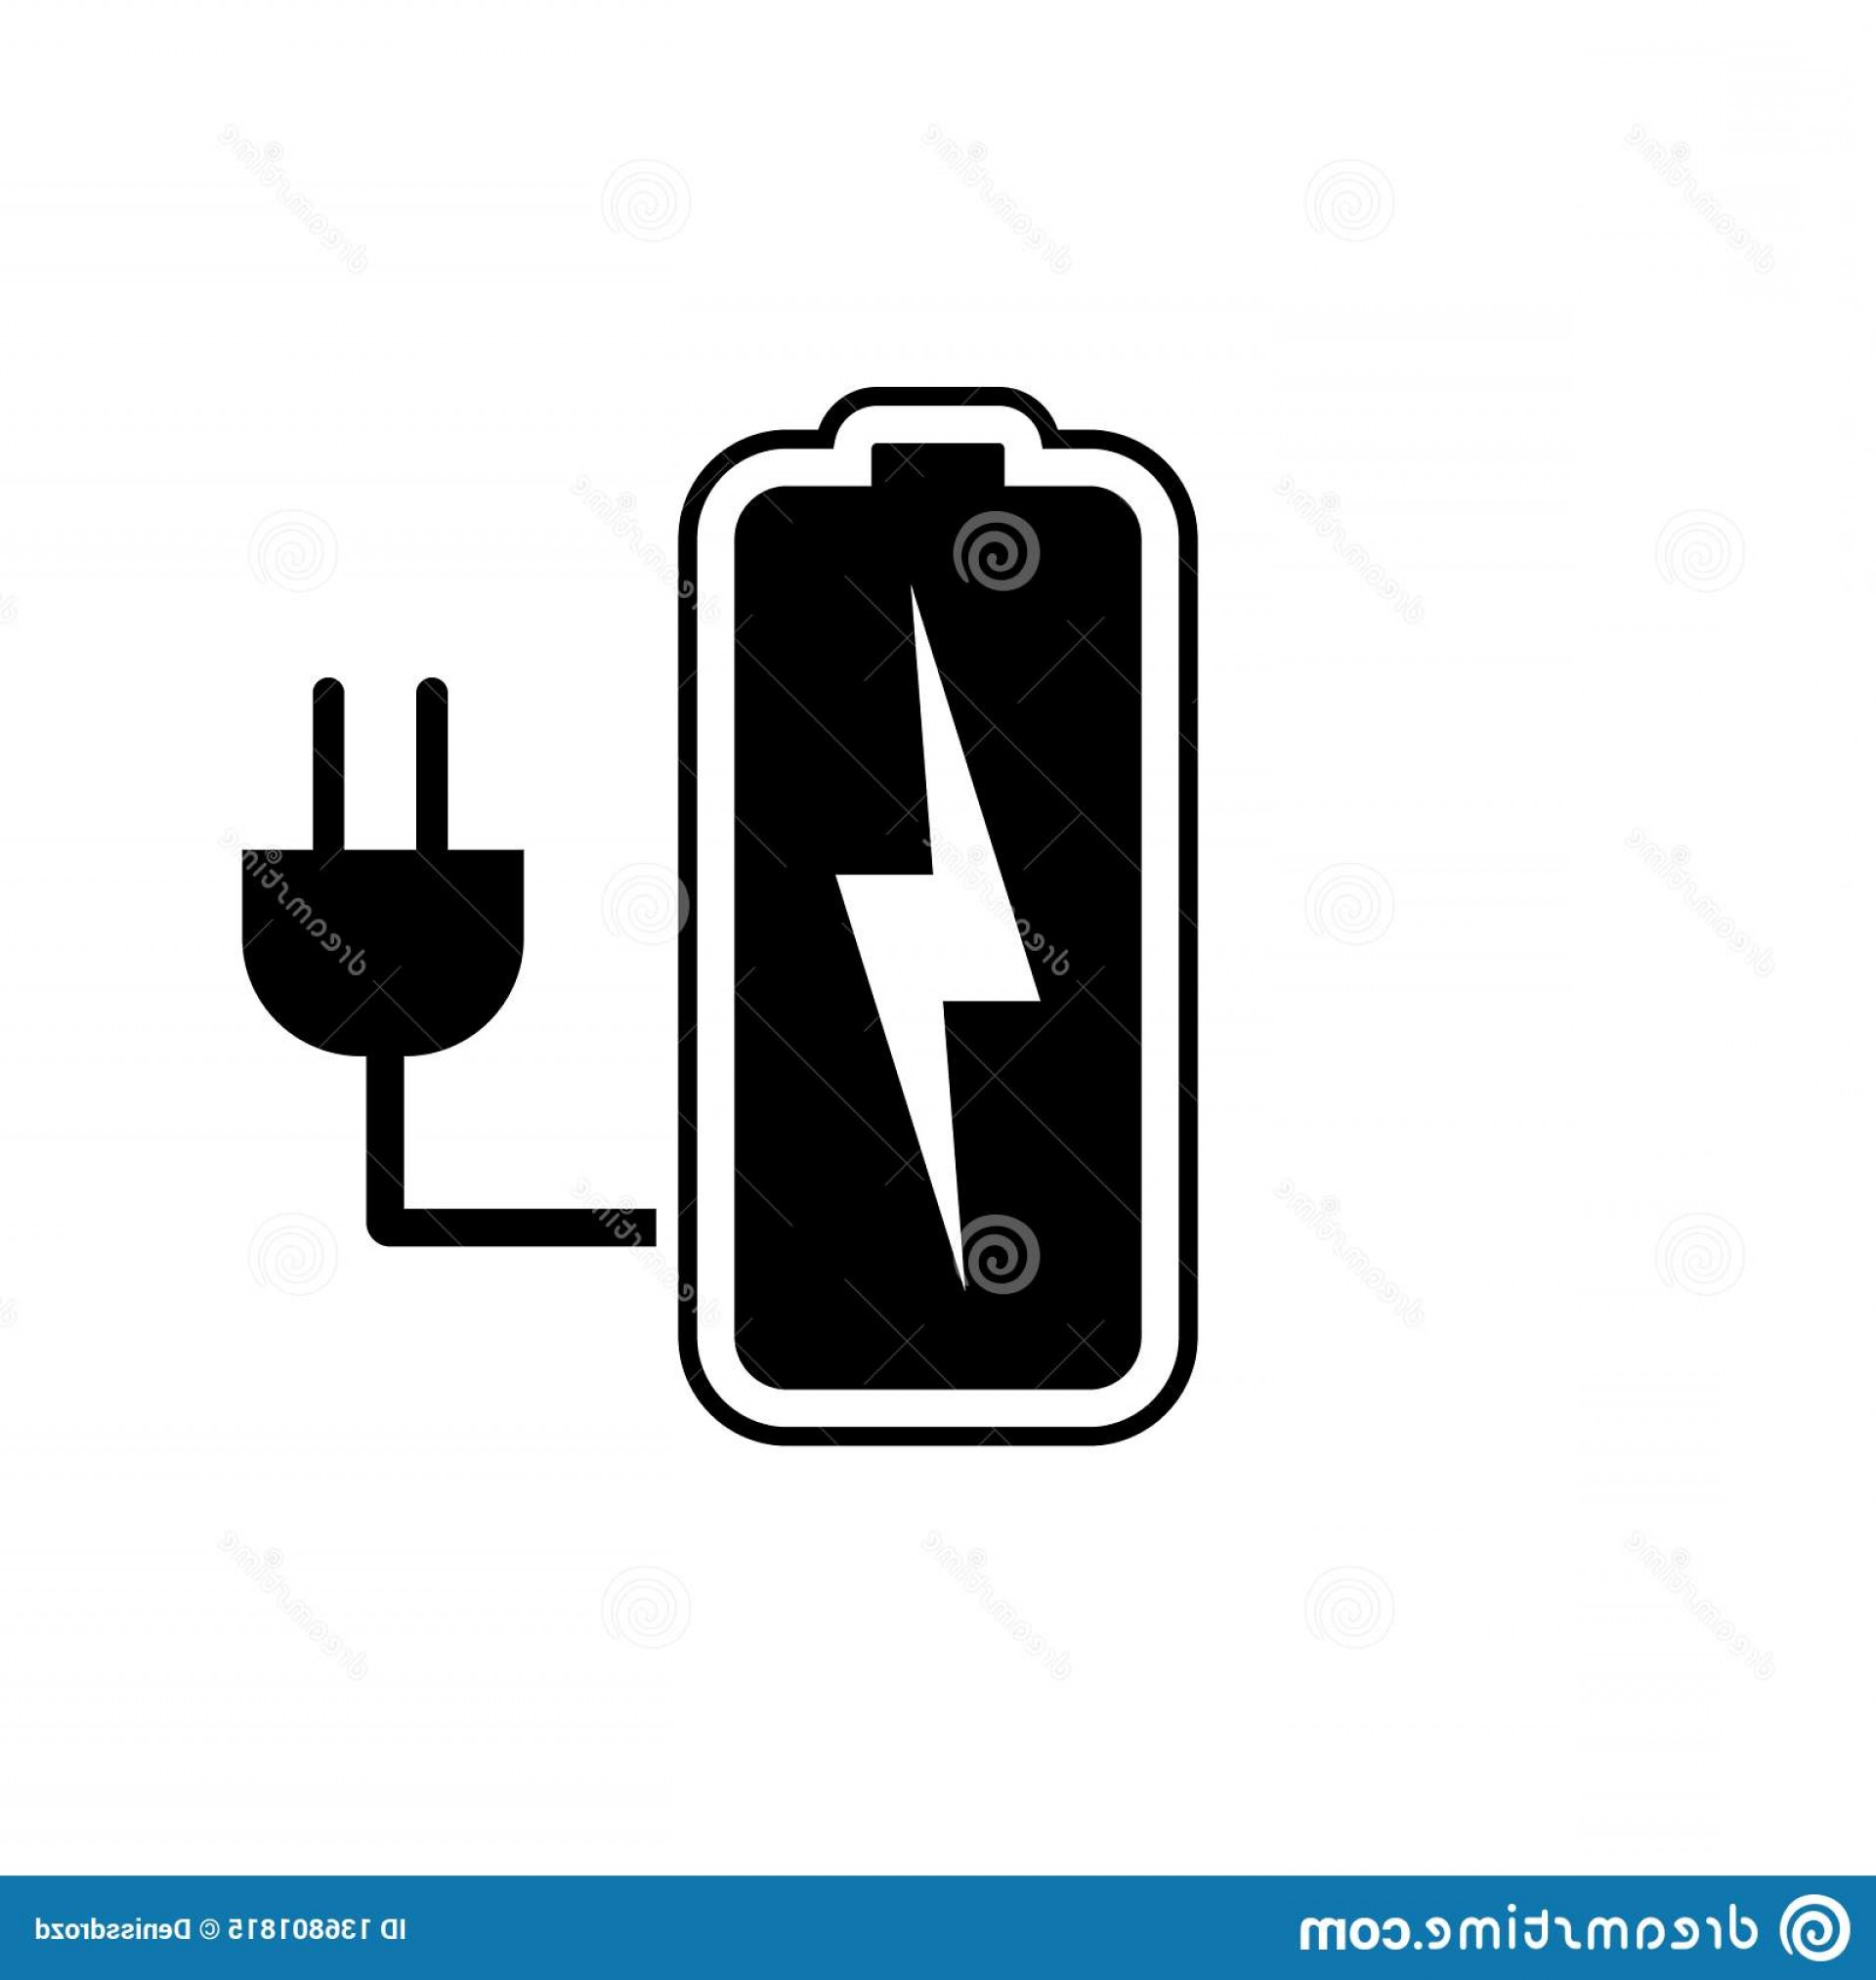 Vector Smart Charger: Battery Charging Icon Battery Vector Illustration Icon Charger Vector Illustration Icon Battery Charging Icon Battery Charger Image